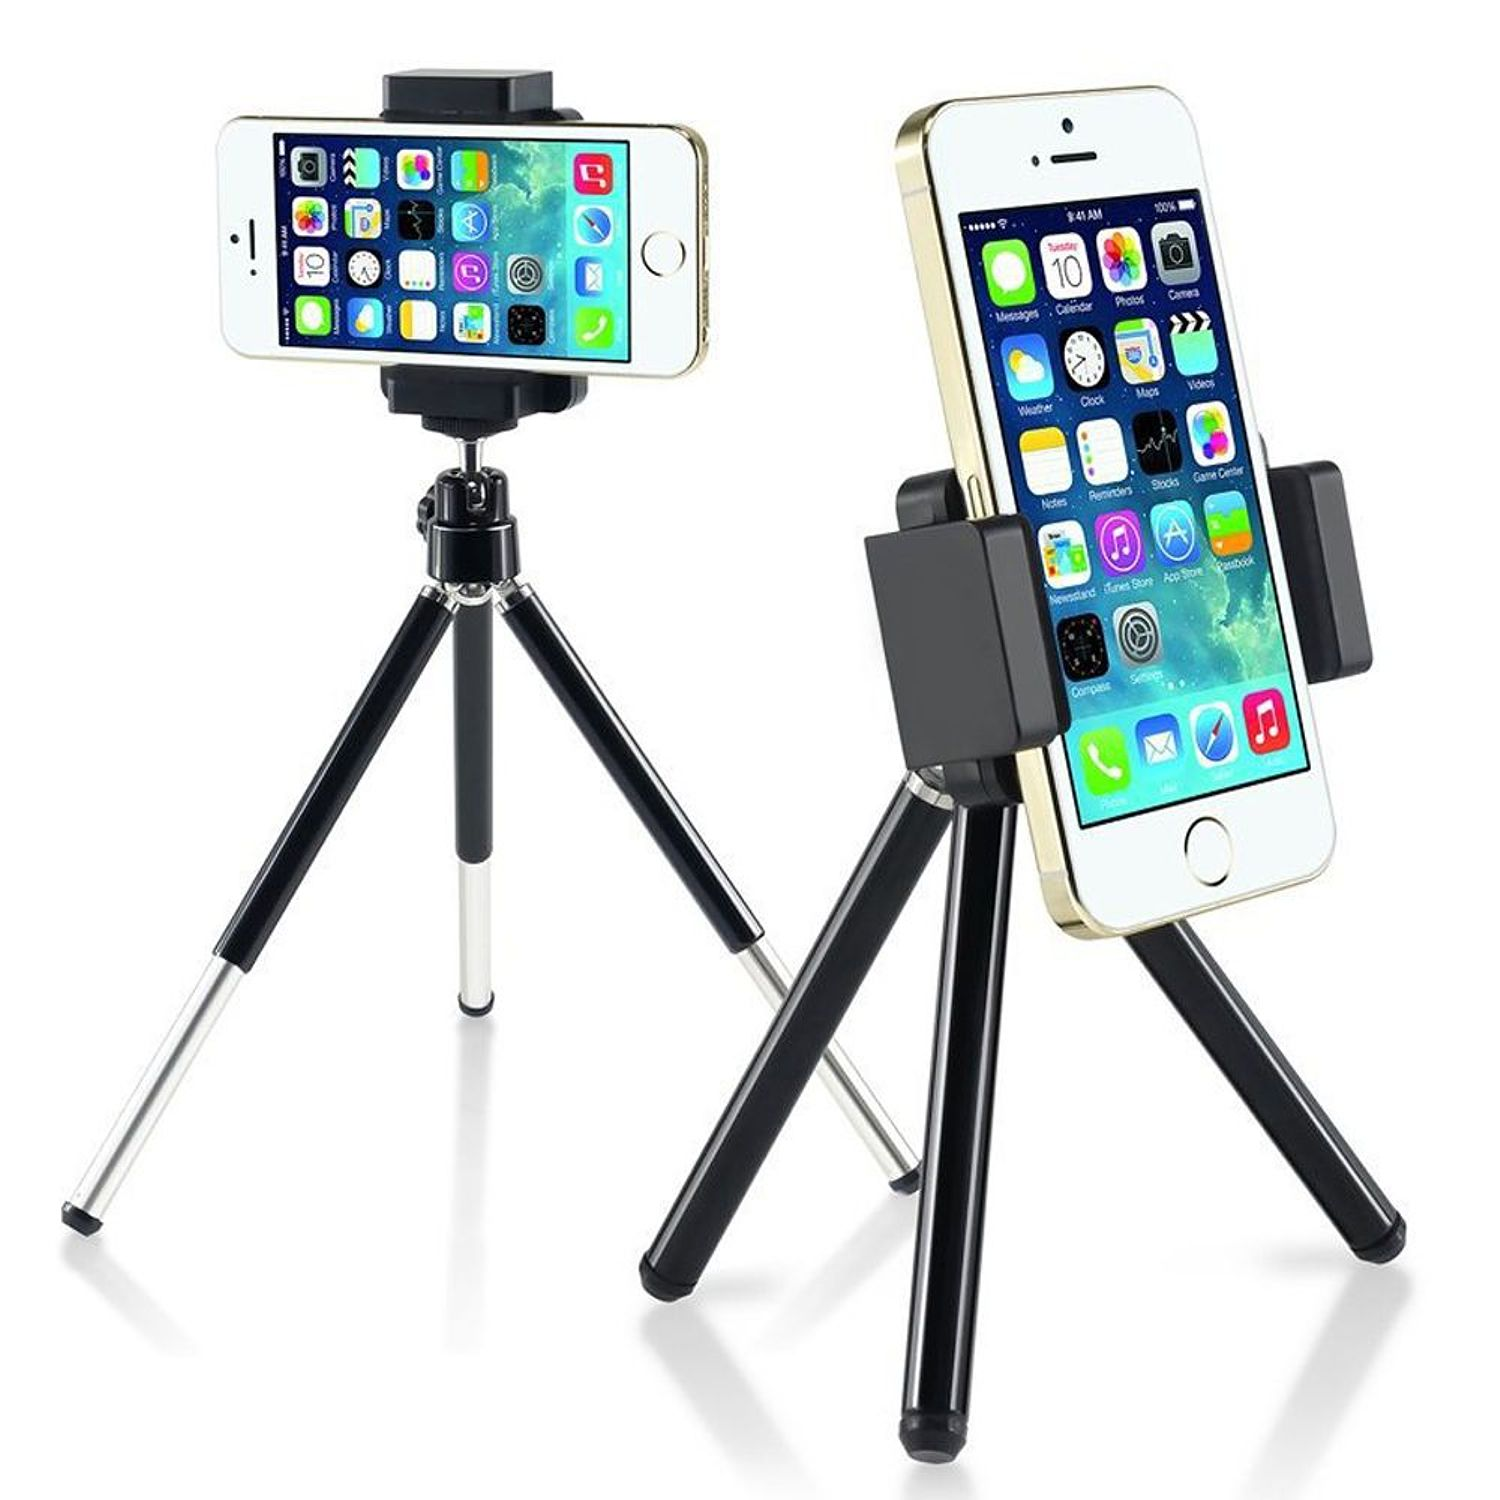 Insten 360 degree Ball Head Mini Phone Tripod Stand Holder for Smartphone Selfie Universal Samsung Galaxy S9 S8 S7 S6 S5 S4 Edge Note 8 5 4 J7 J3 Apple iPhone X 10 7 8 6 6S Plus SE 5S 5C Pocket-Size